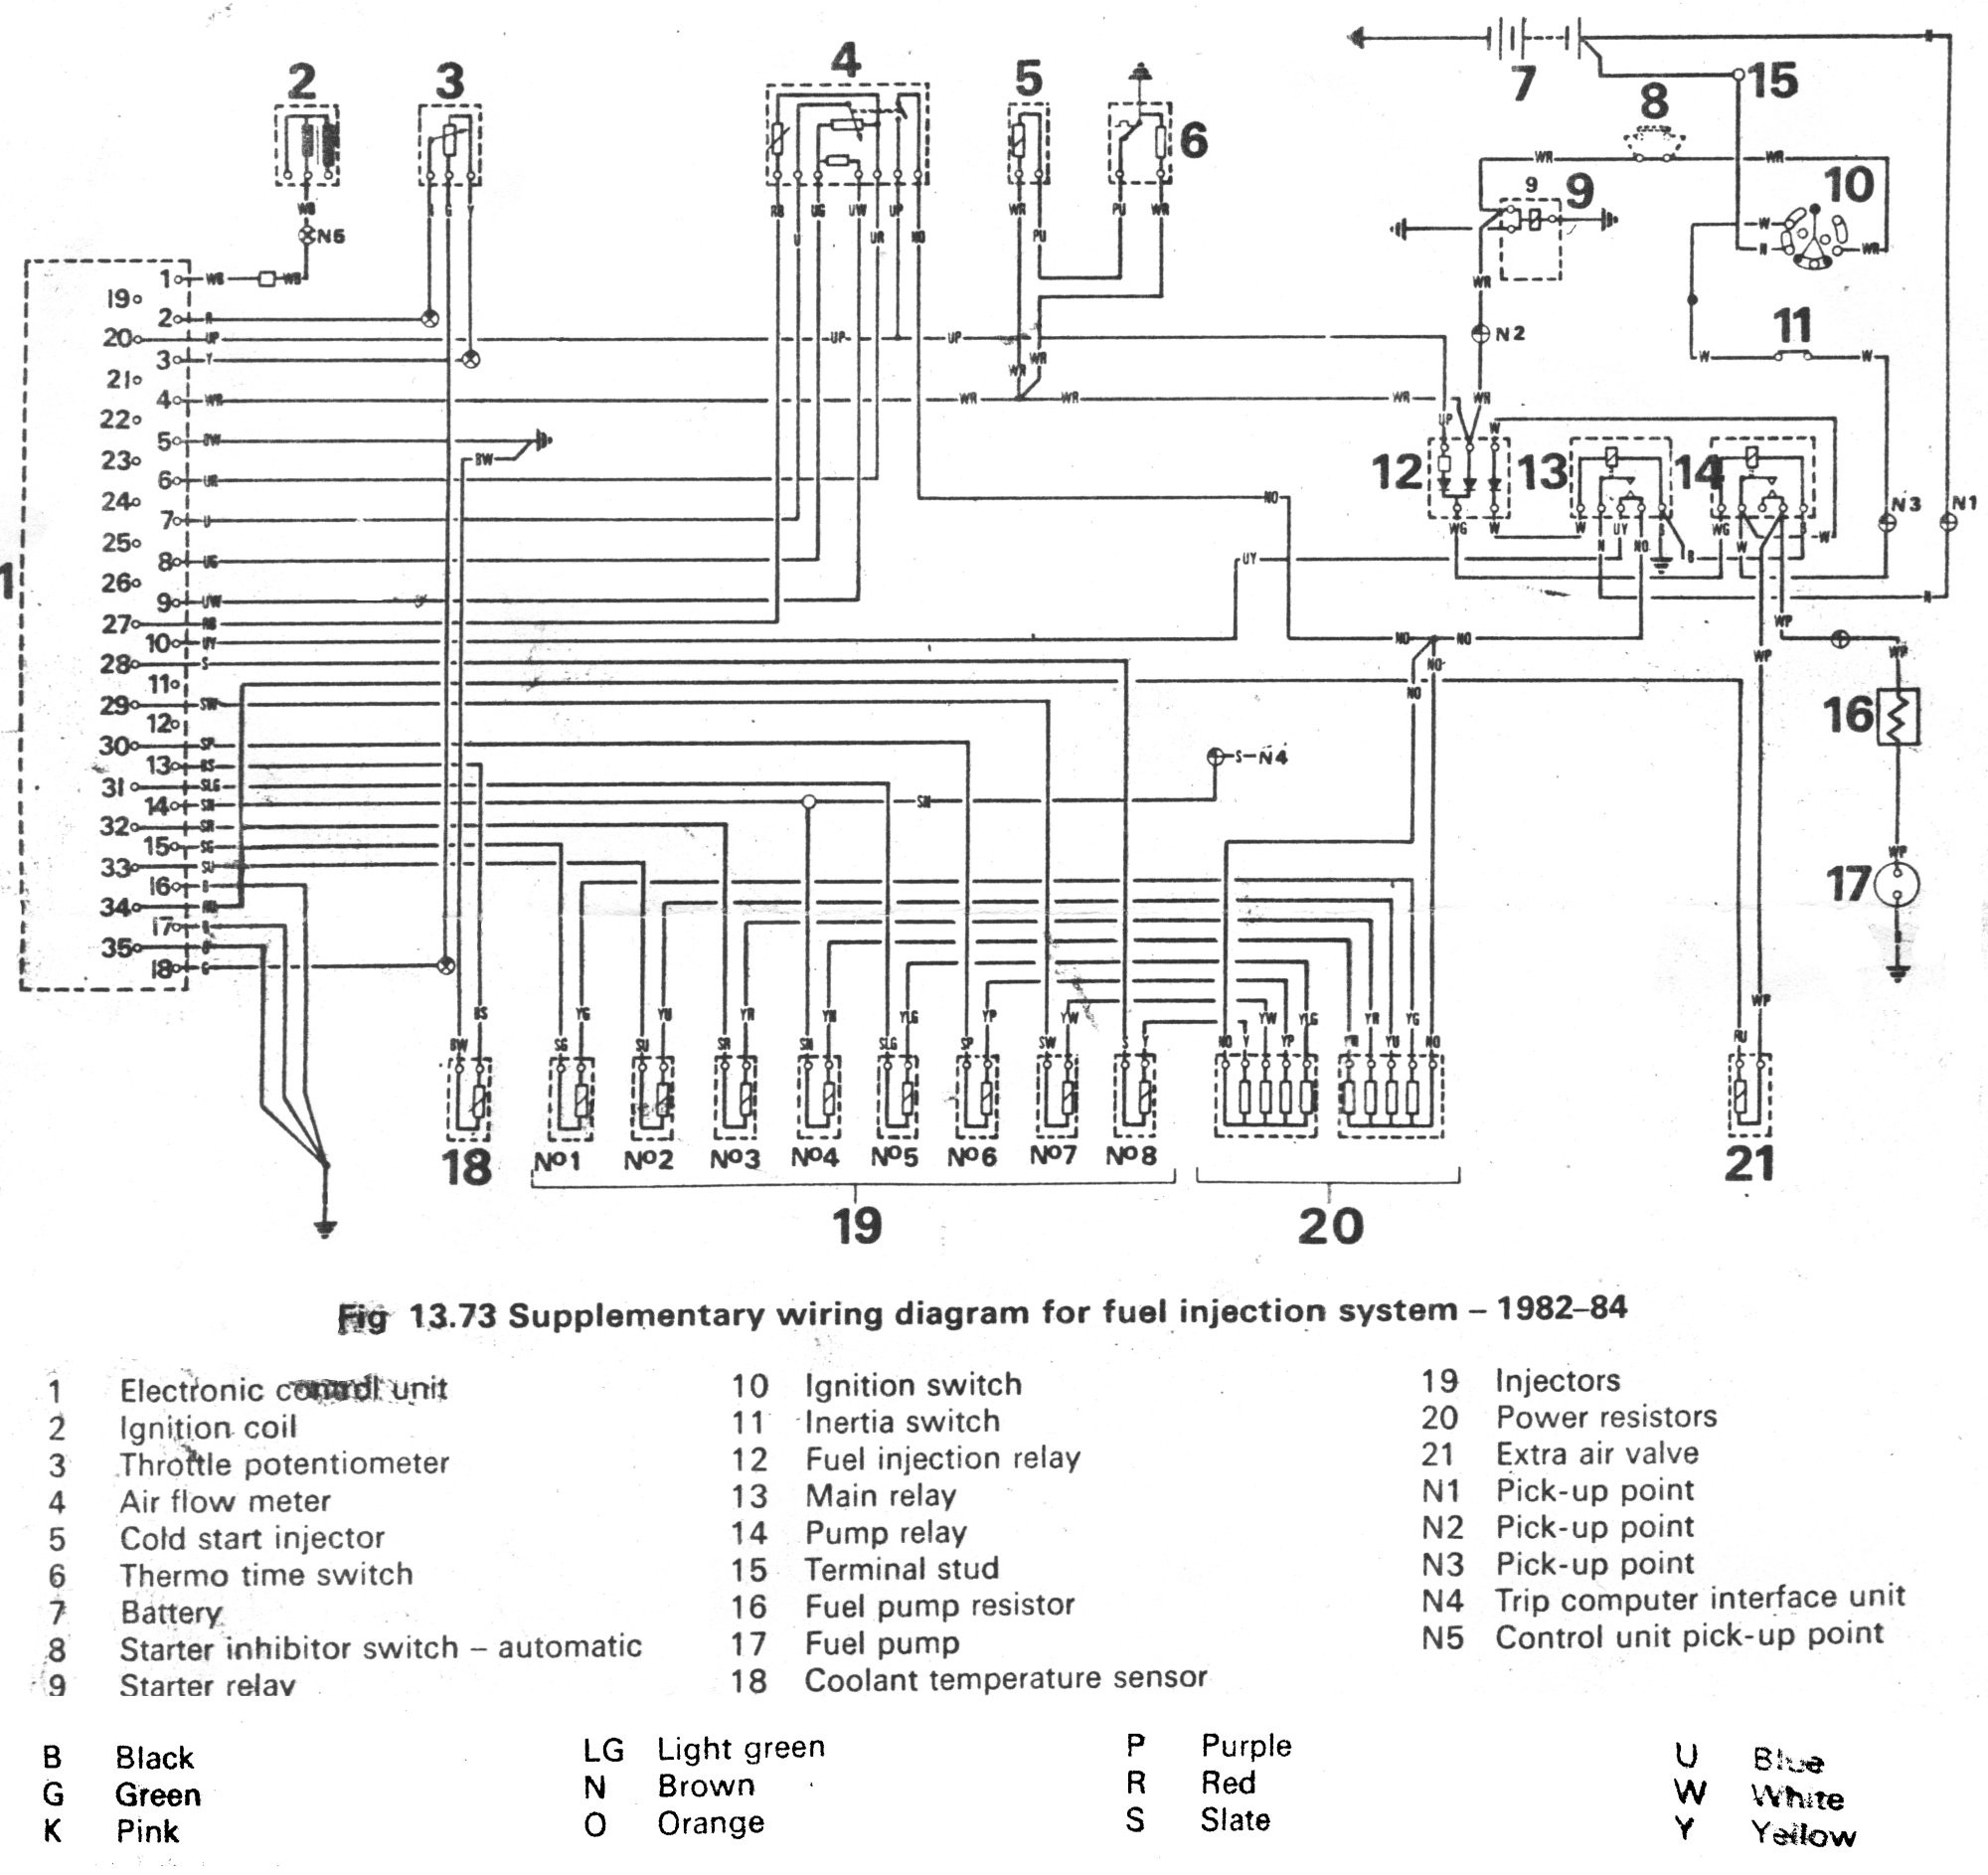 1986 Chevy Truck Fuse Box Diagram 87 Chevy Wiring Diagram